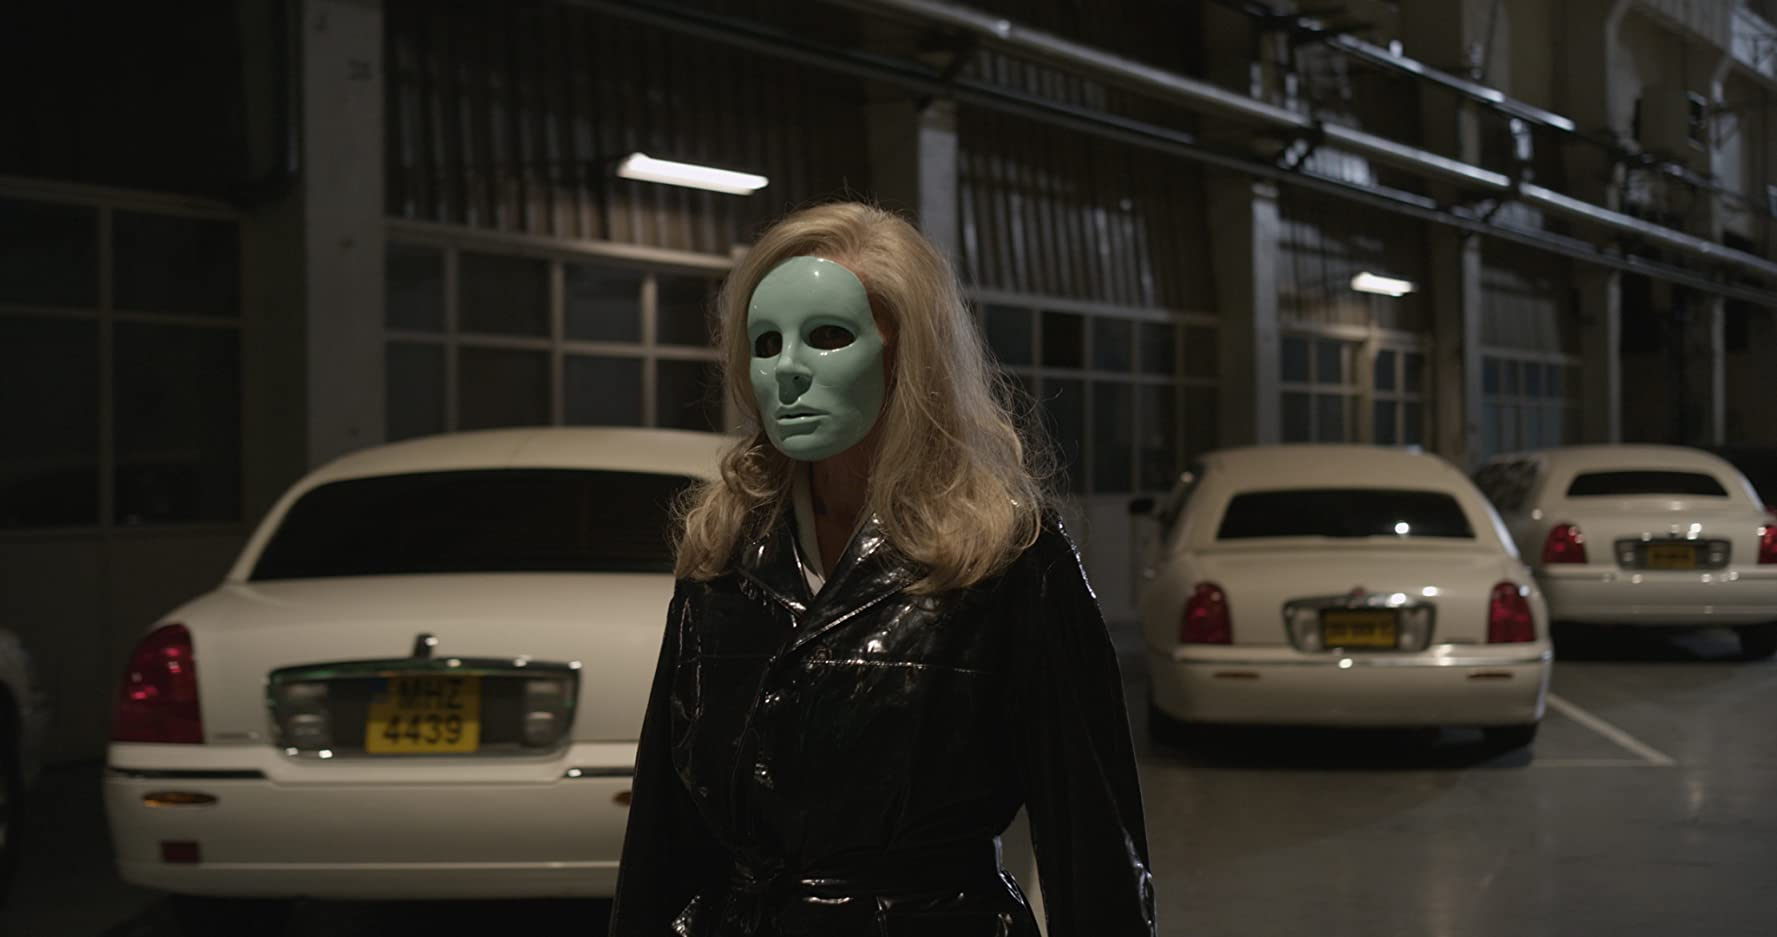 Edith Scob in Holy Motors (2012)